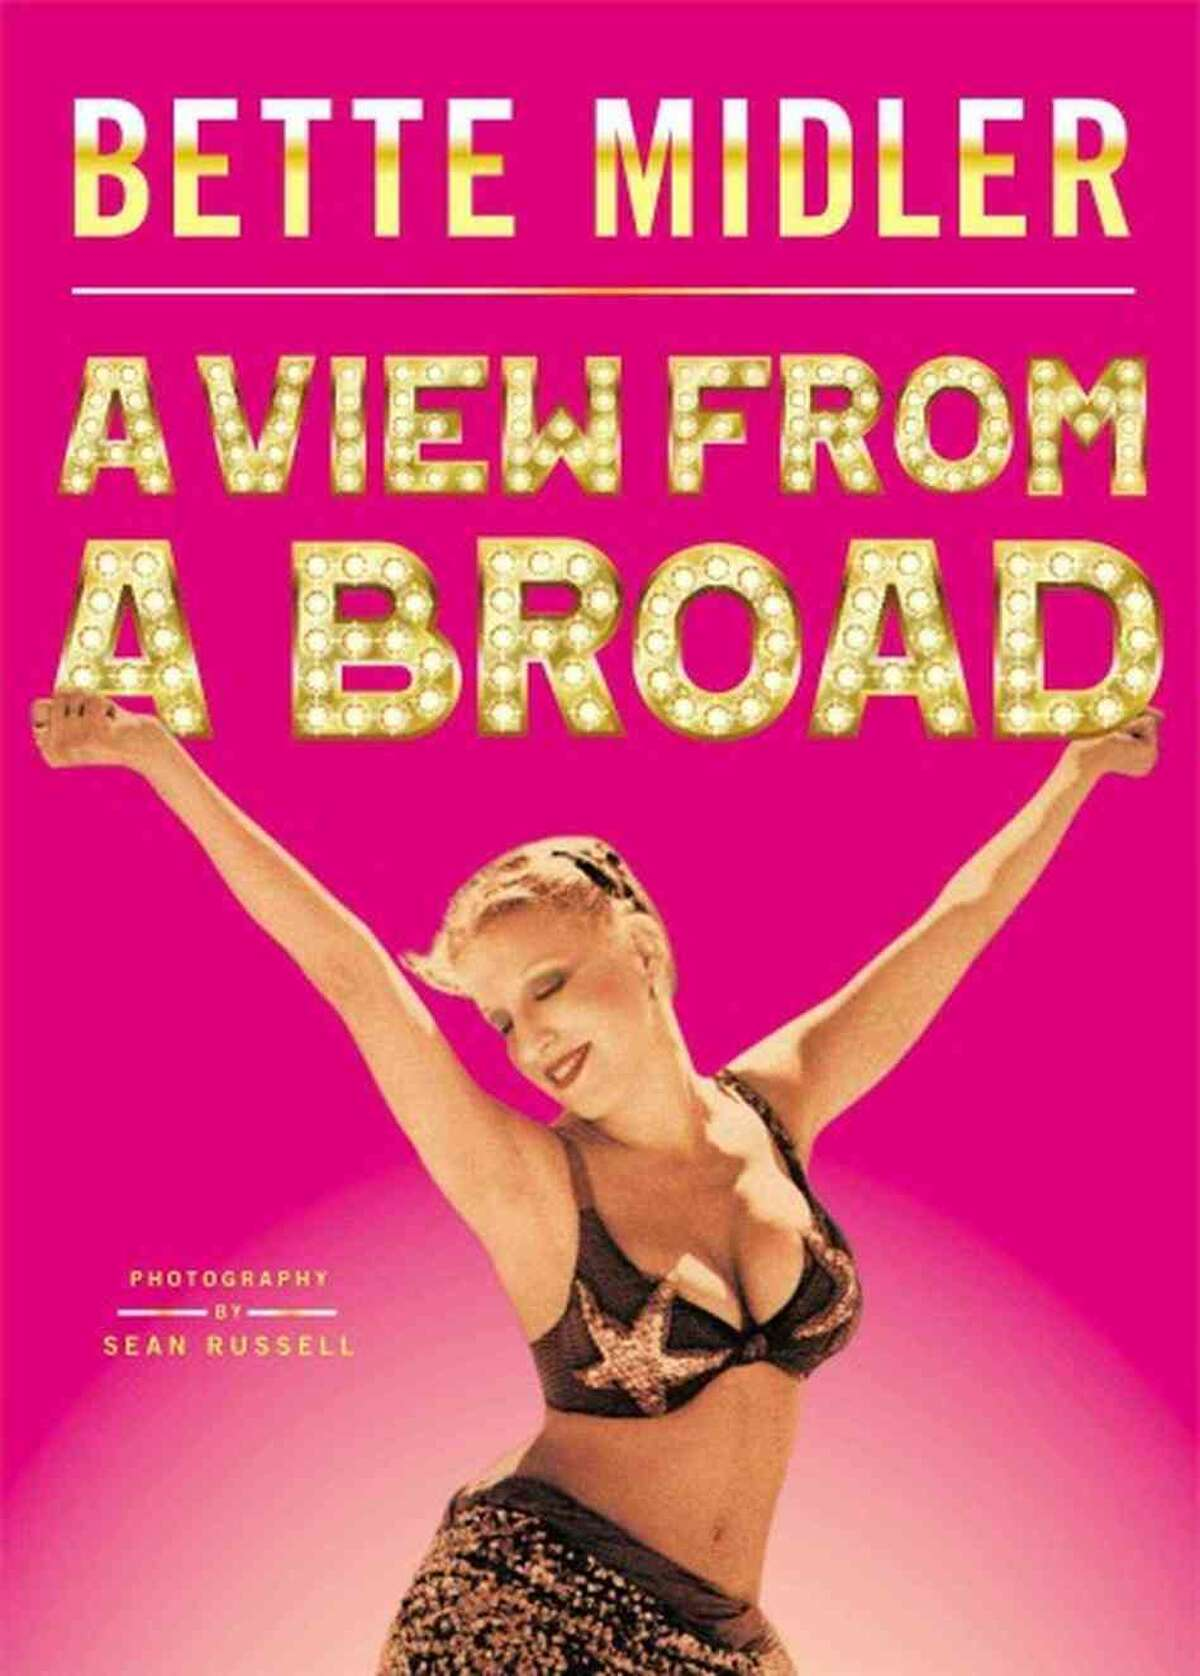 """""""A View From a Broad"""" by Bette Midler was reissued this month. It was originally released in 1980."""